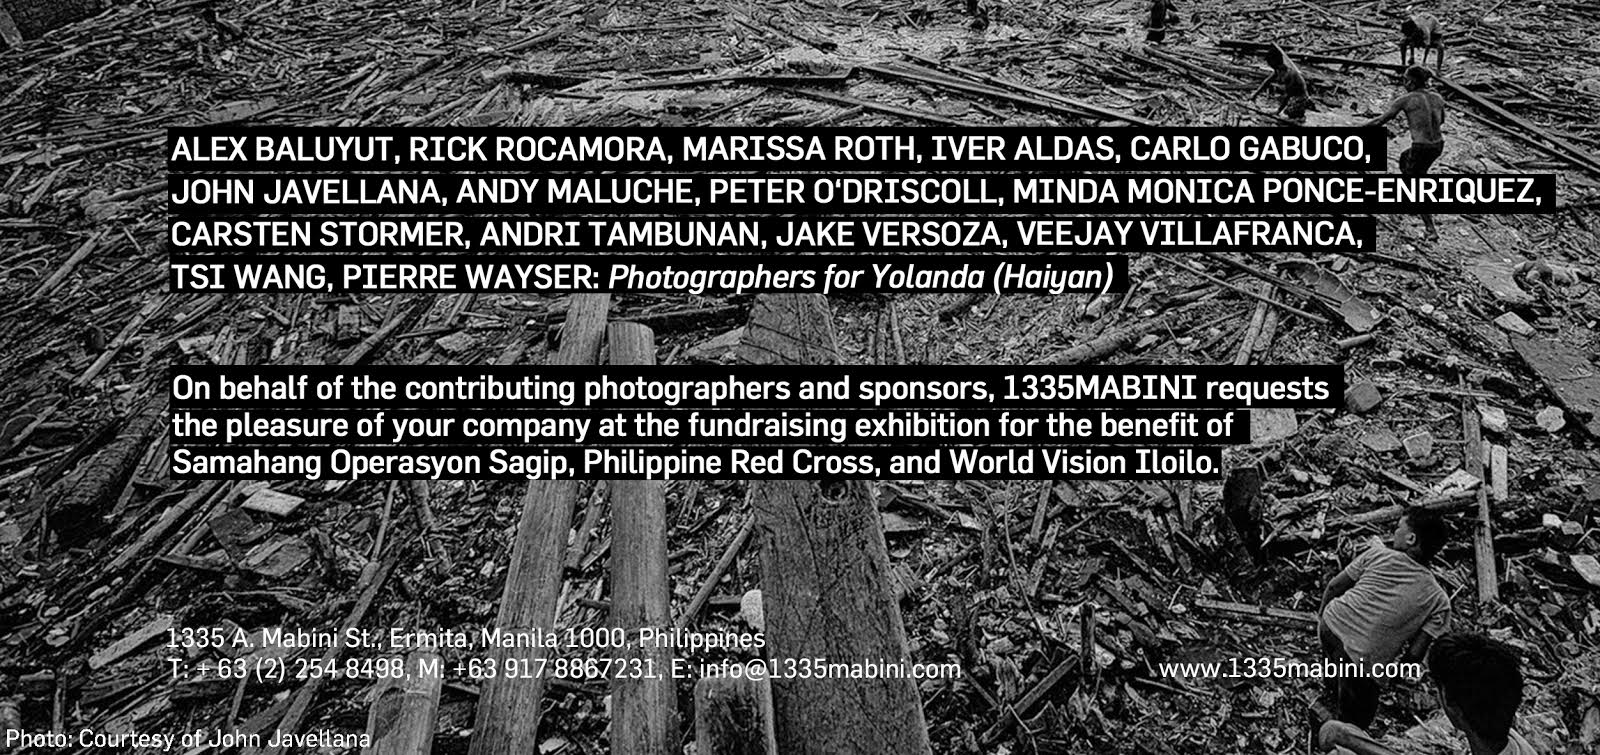 Photographers for Yolanda (Haiyan)